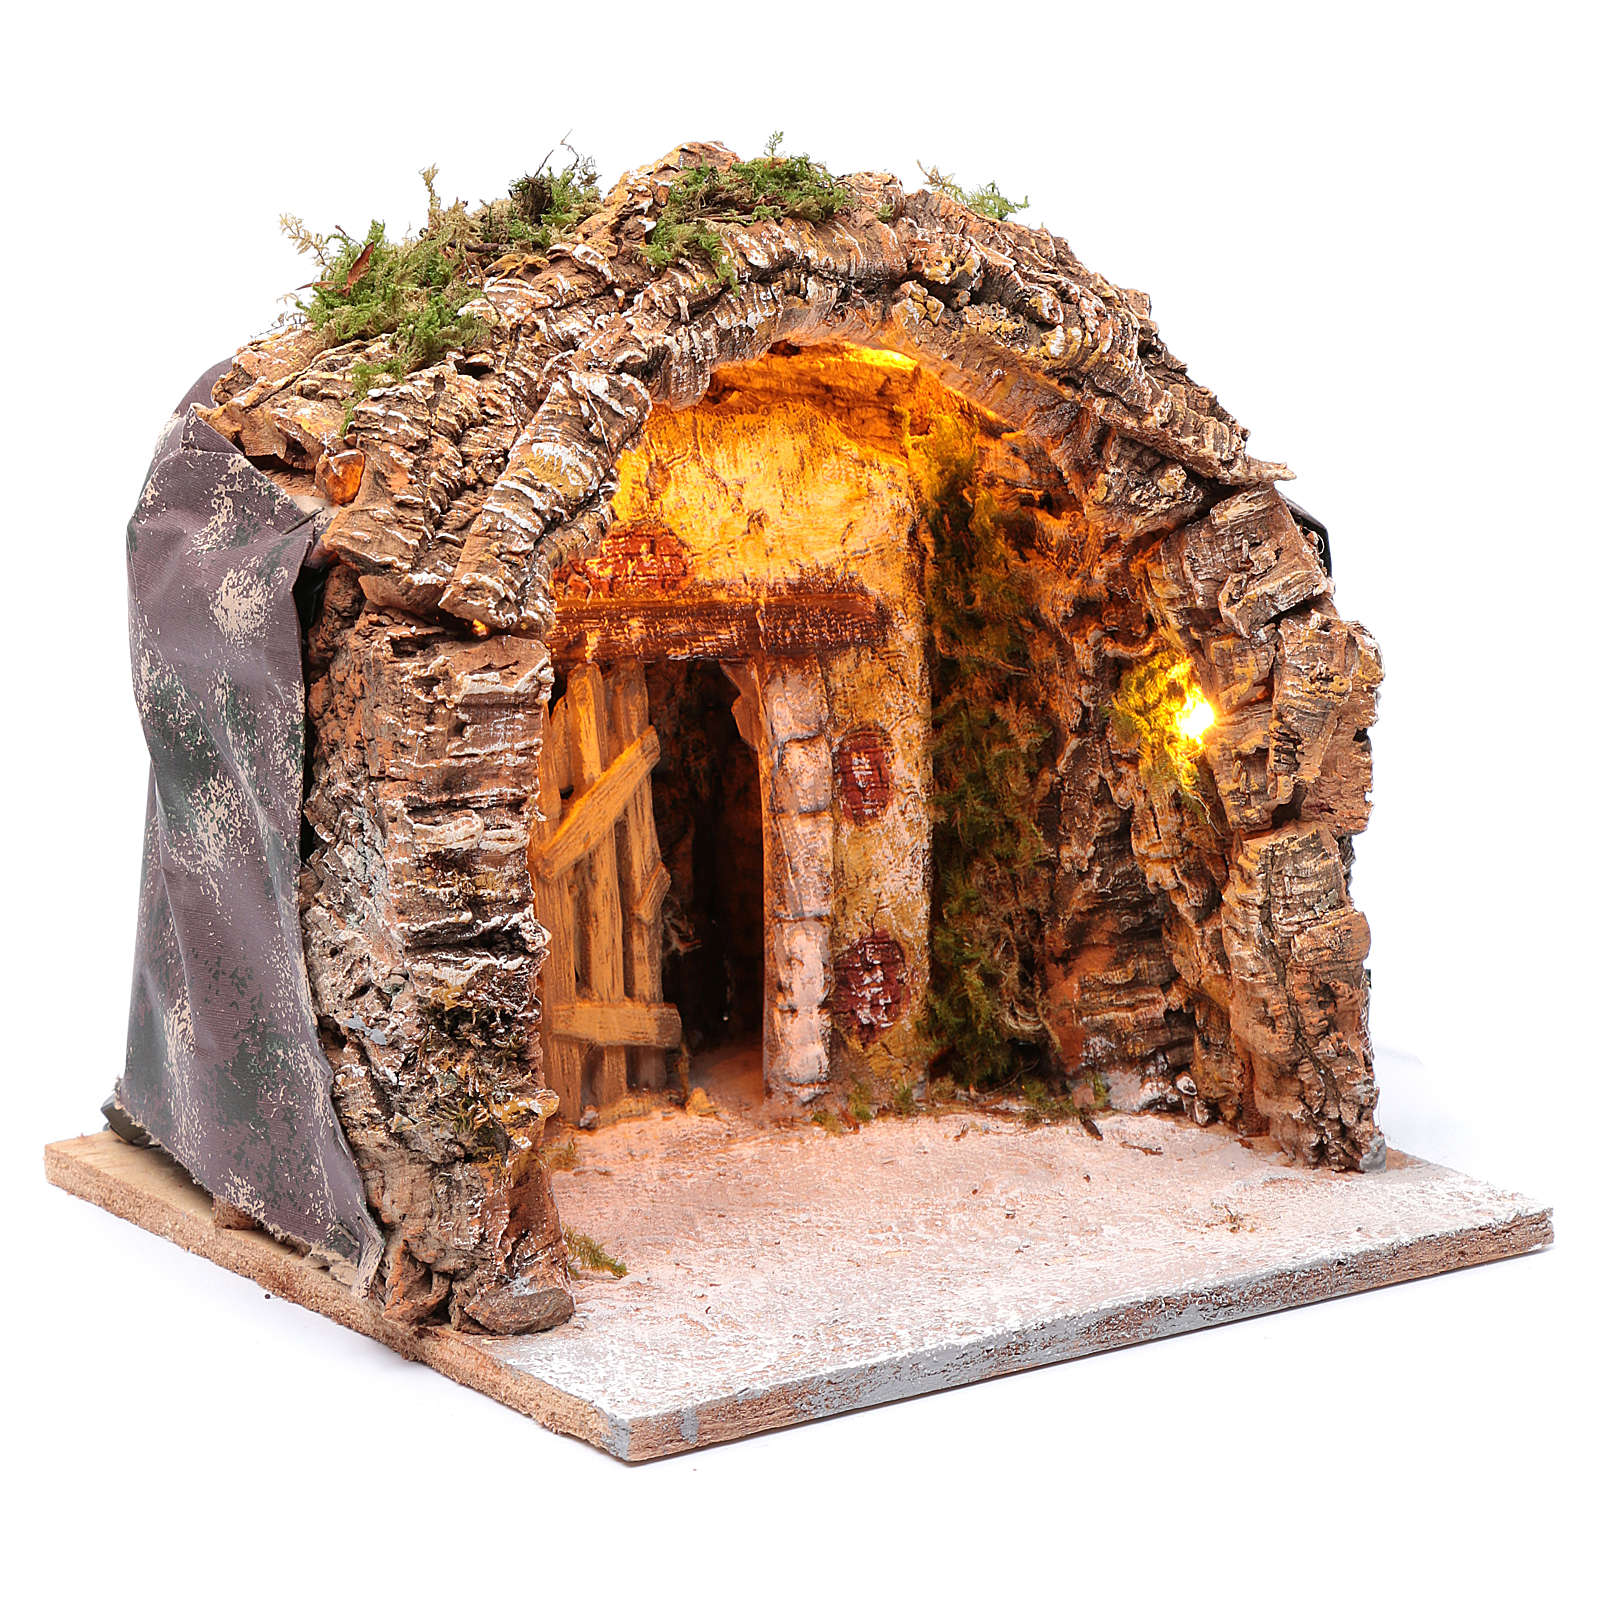 Illuminated grotto in wood and cork, nativity scene 28x25x26cm 4